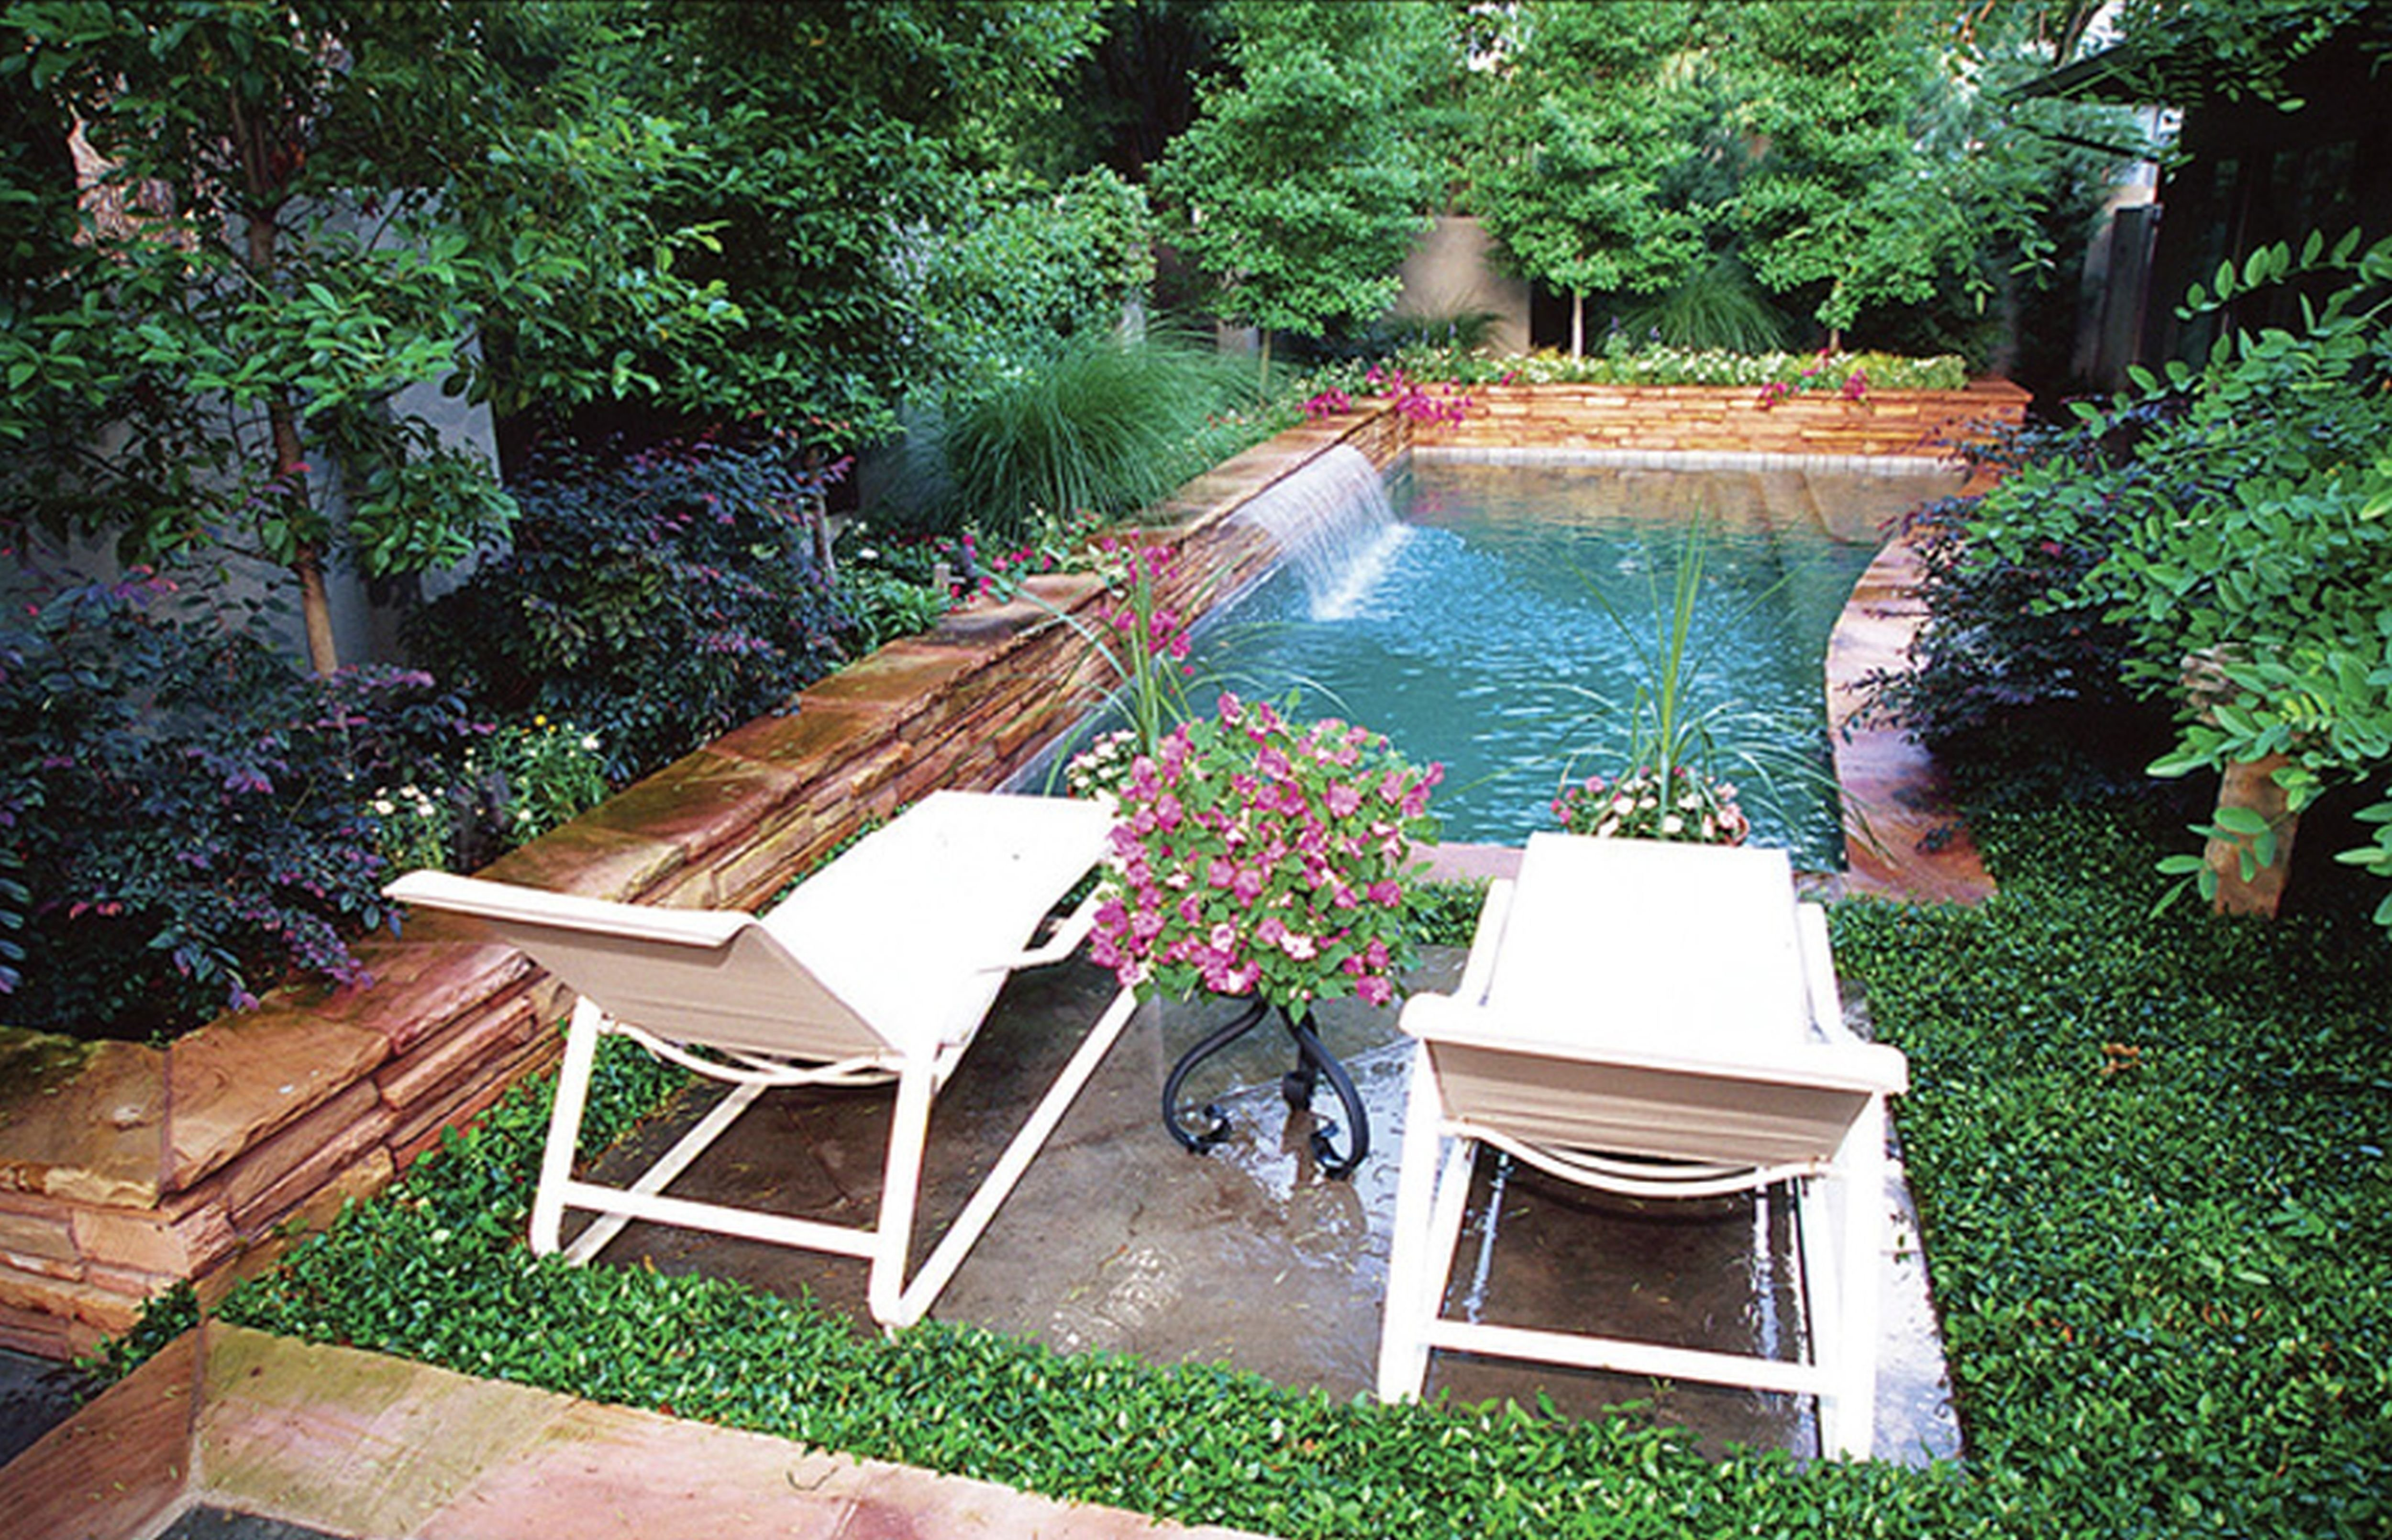 10 Attractive Landscaping Ideas For Small Yards elegant backyard landscaping ideas for small yards interior and 2020